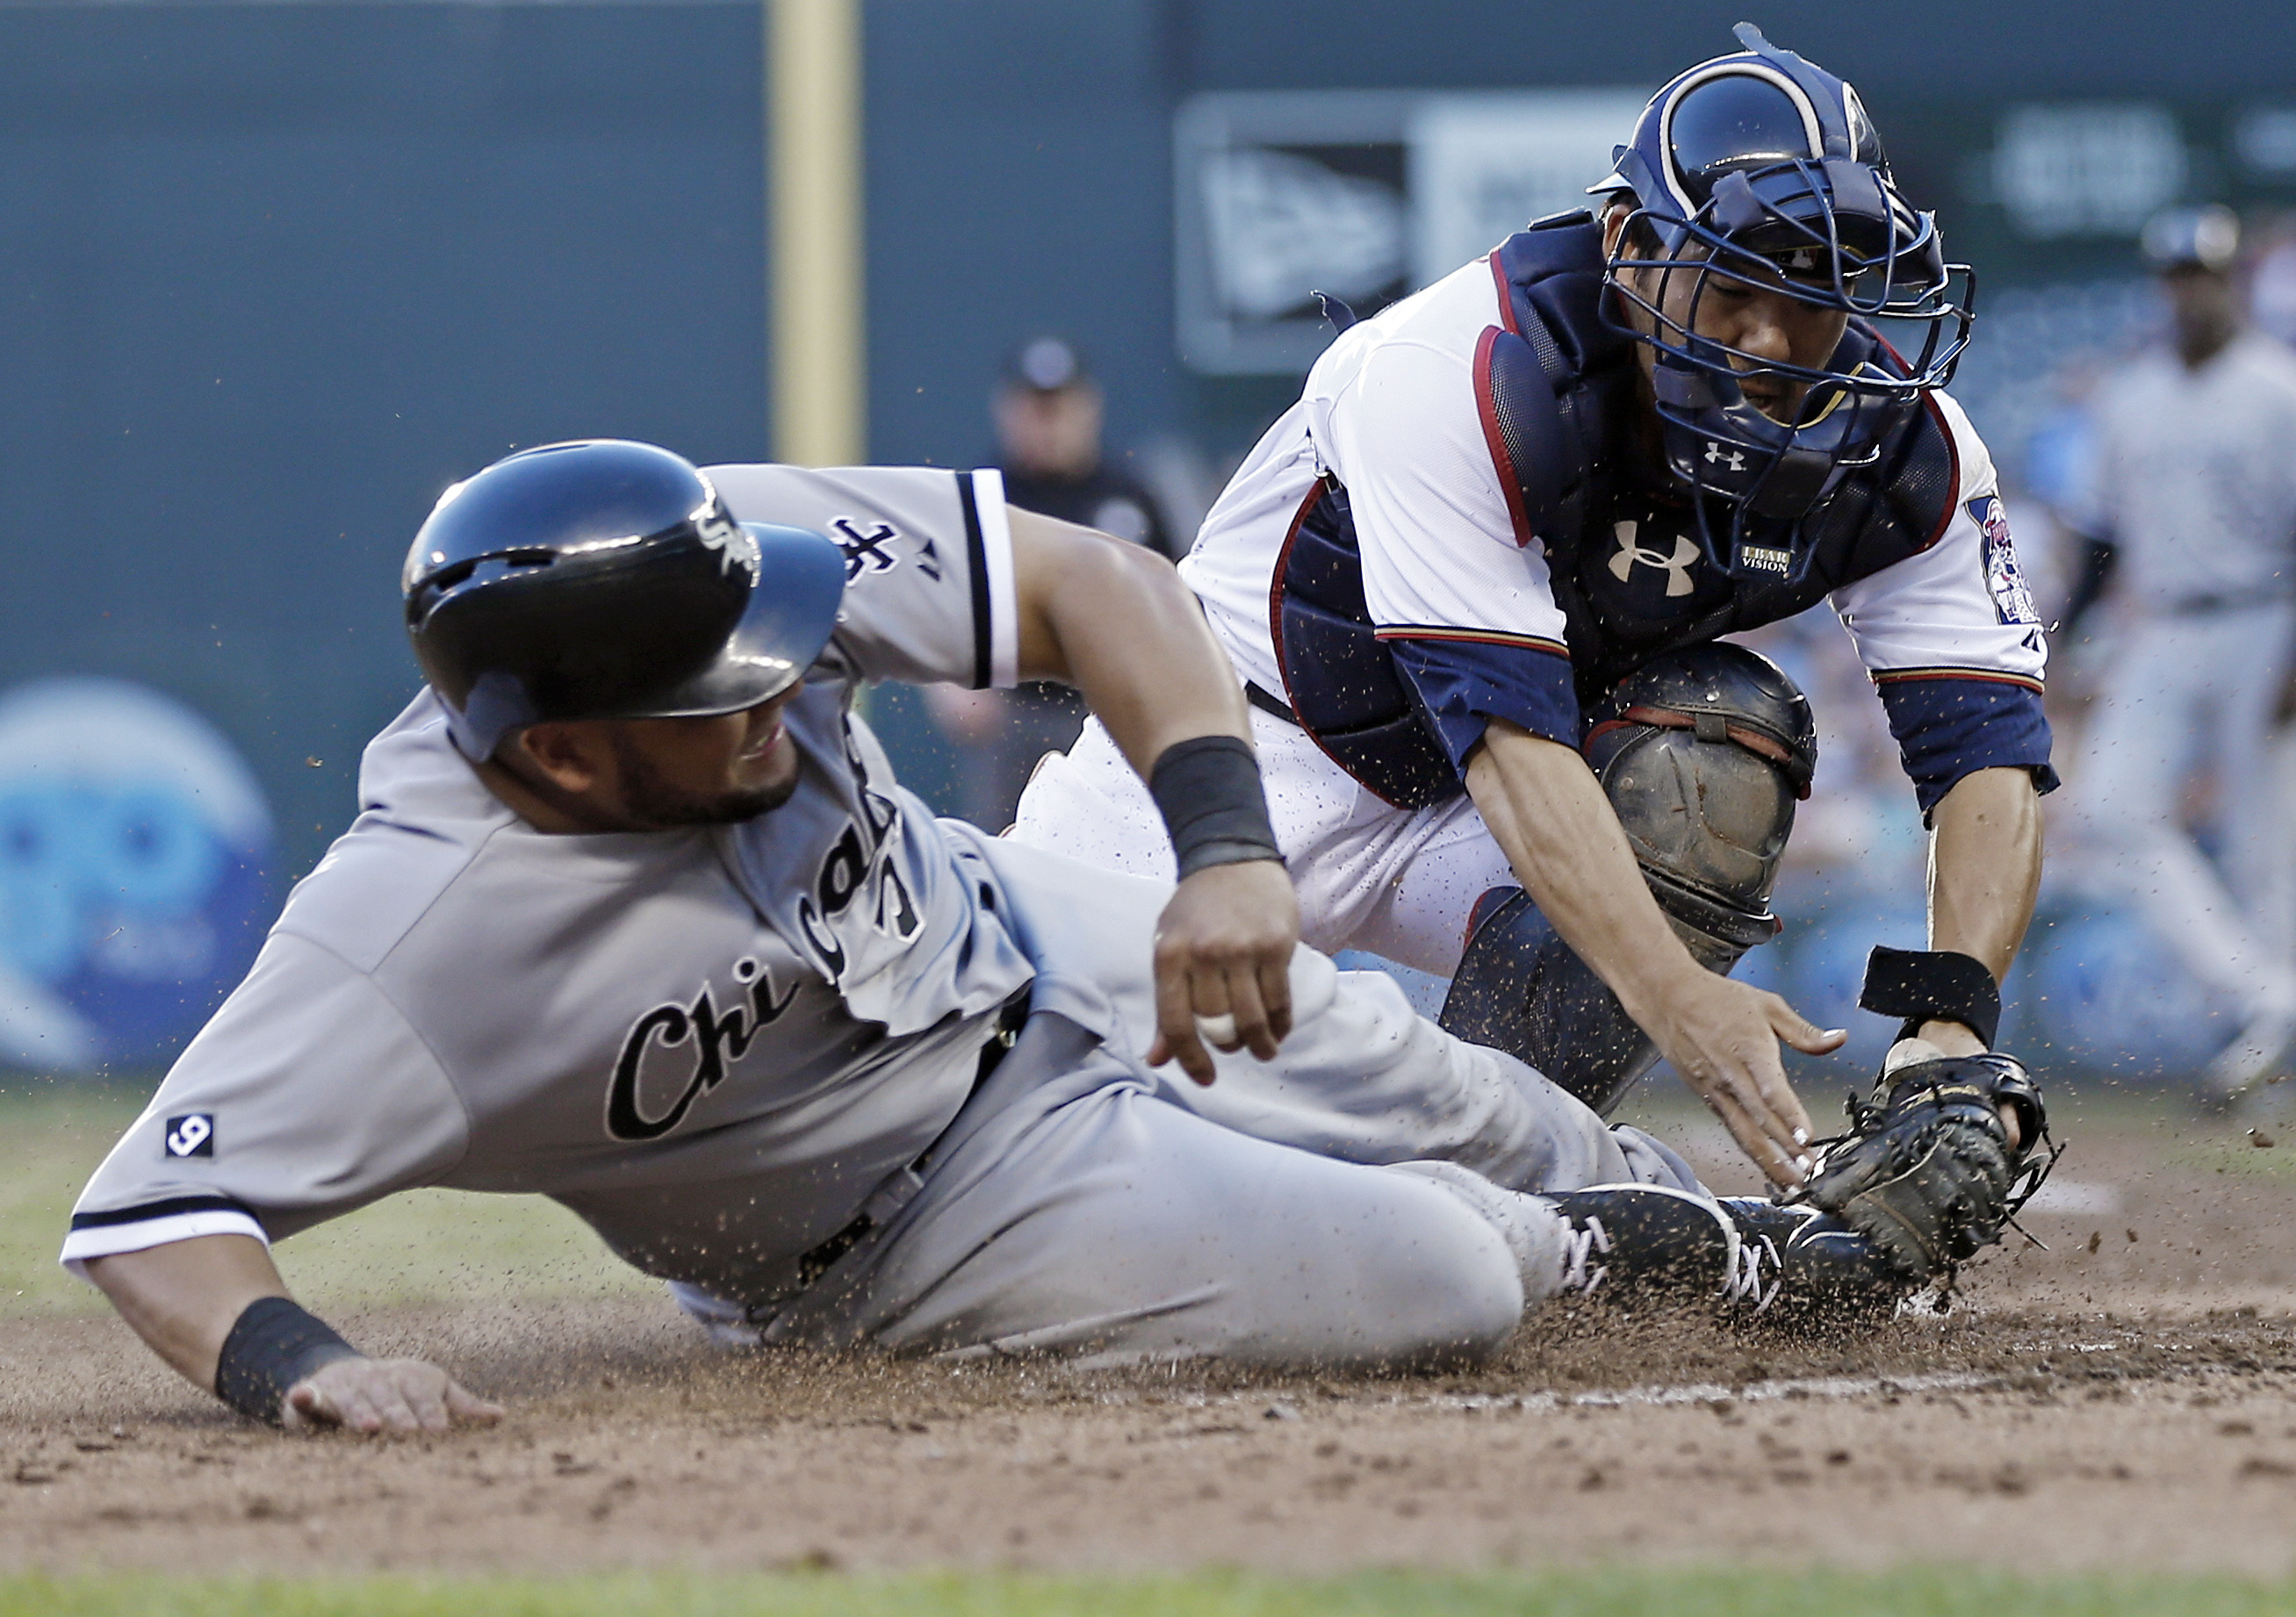 Chicago White Sox left fielder Melky Cabrera, left, is tagged out by Minnesota Twins catcher Kurt Suzuki as he tried to score on a single by Alexei Ramirez in the third inning of a baseball game, Monday, June 22, 2015, in Minneapolis. (AP Photo/Jim Mone)